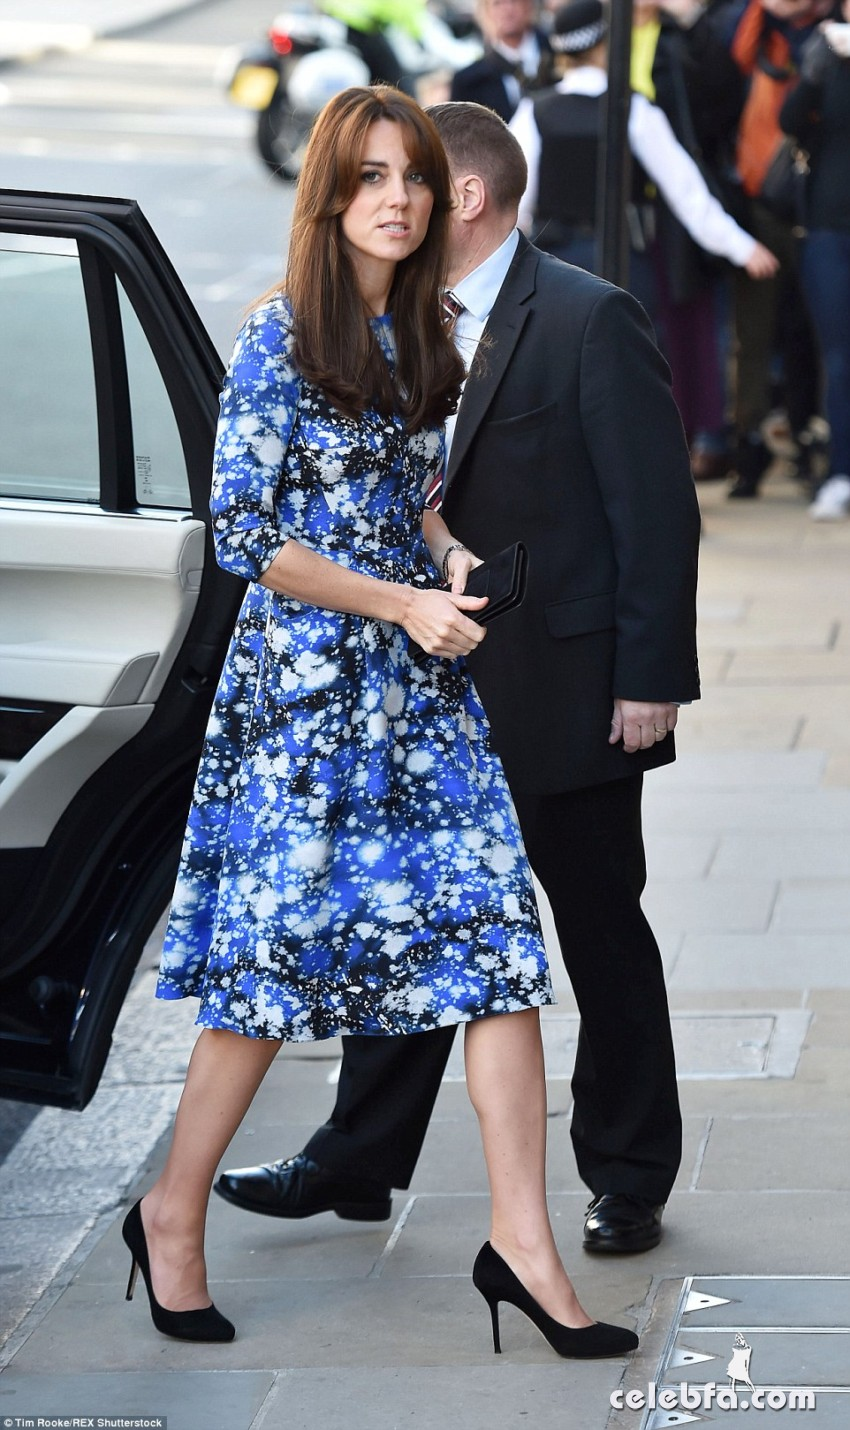 kate-middleton-baftahheadquarters-piccadilly-in-london  (7)